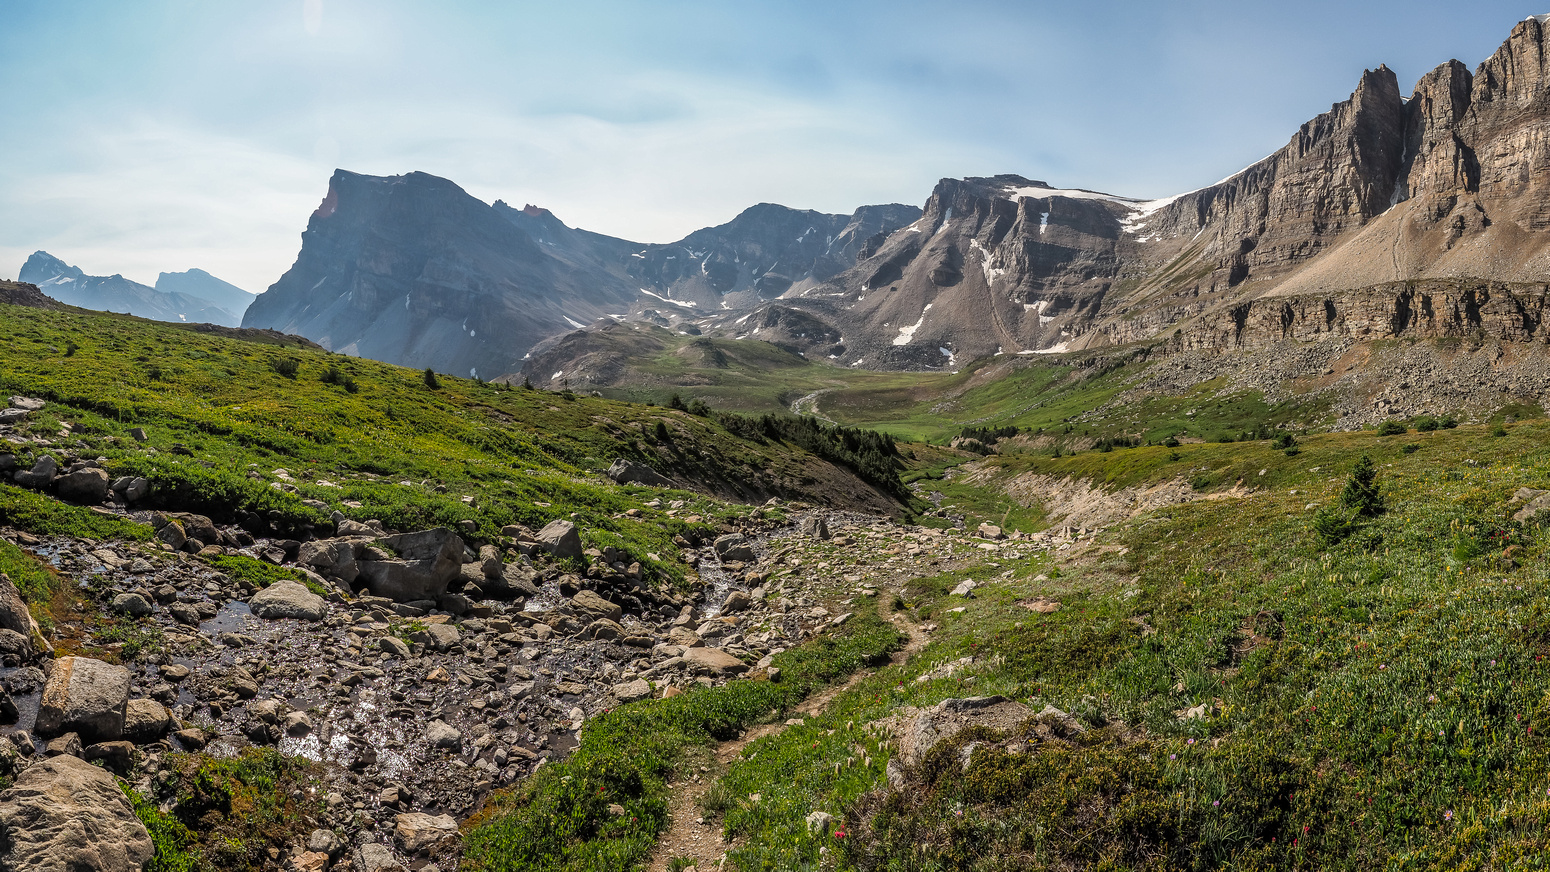 The trail continues to wind it's way down valley - Fish Lakes still out of sight at lower left here with Minnow Peak rising at left above them.